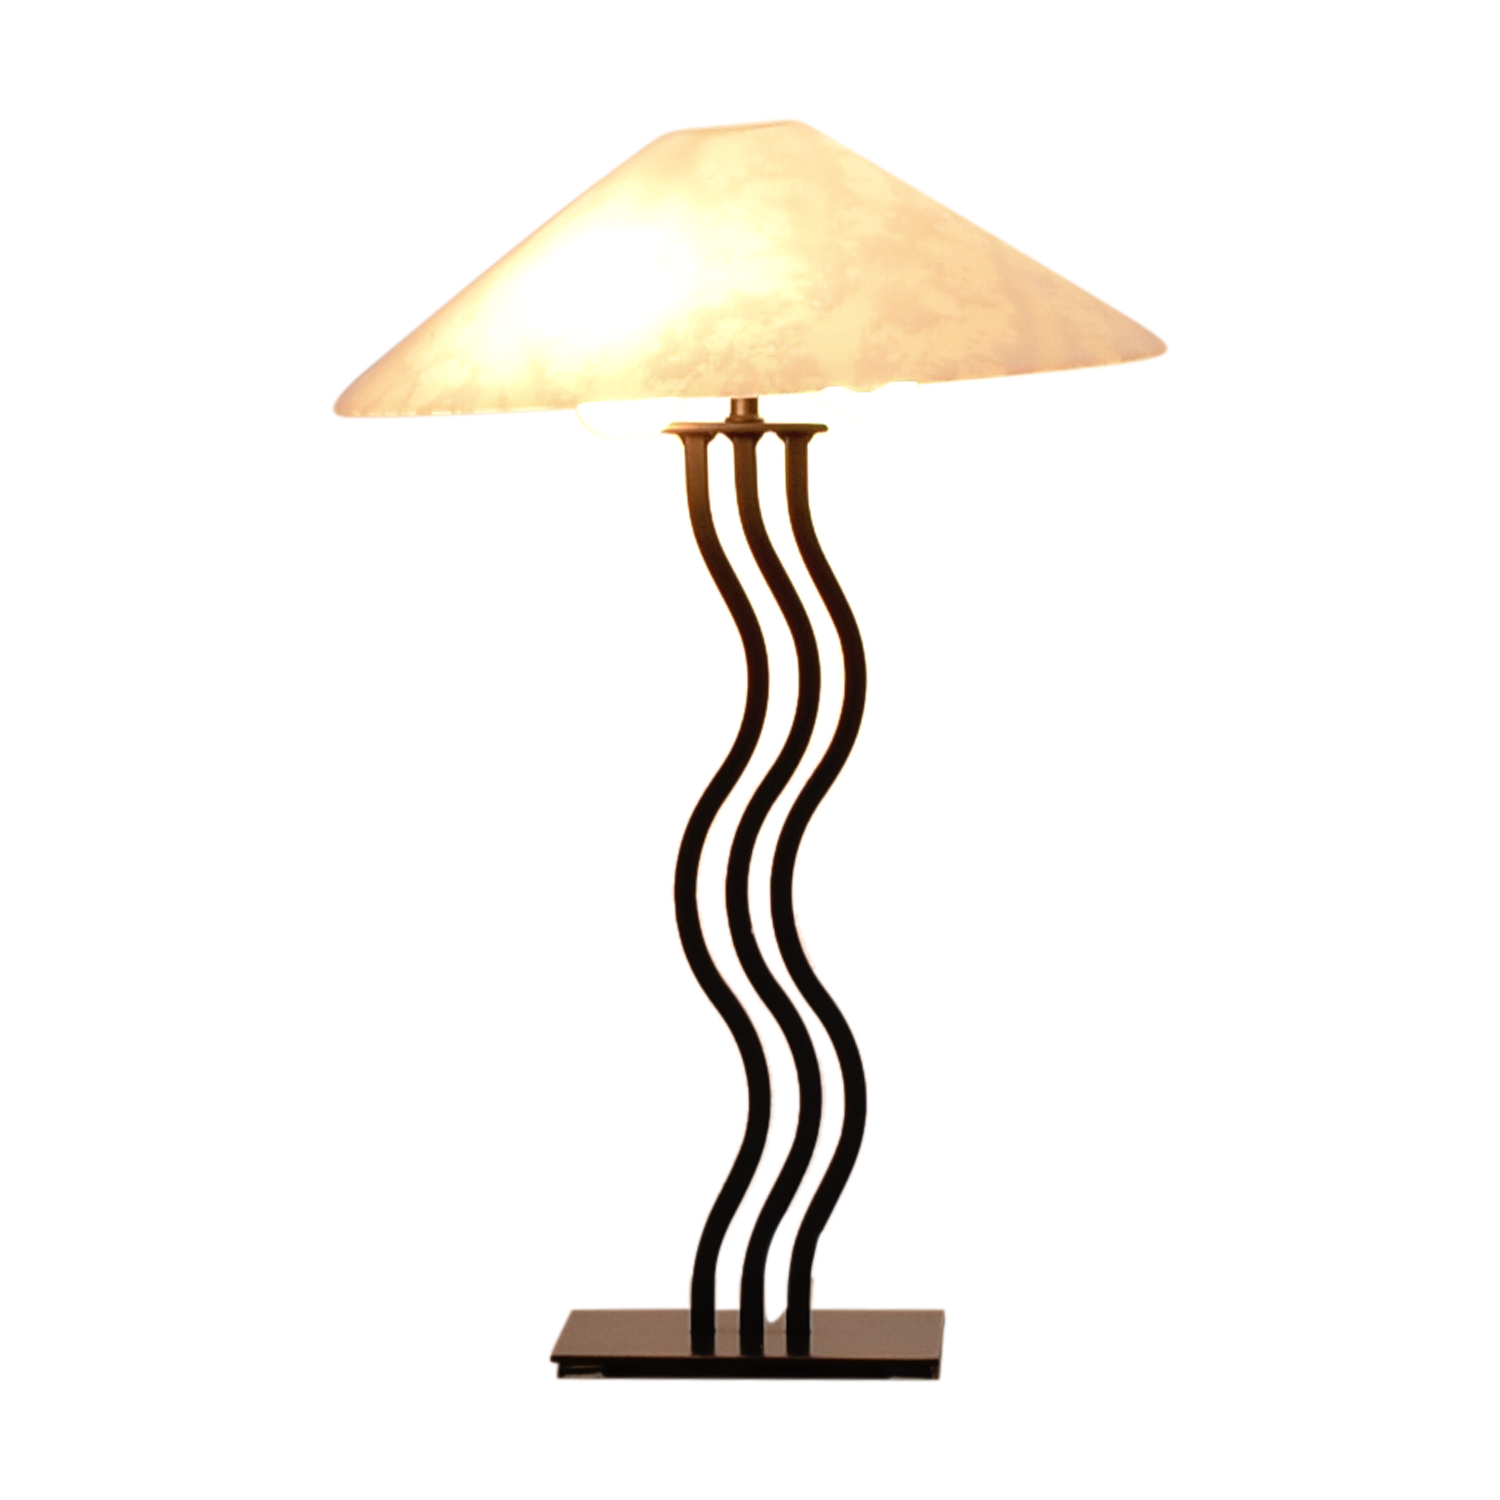 Art Deco Wave Table Lamp on sale